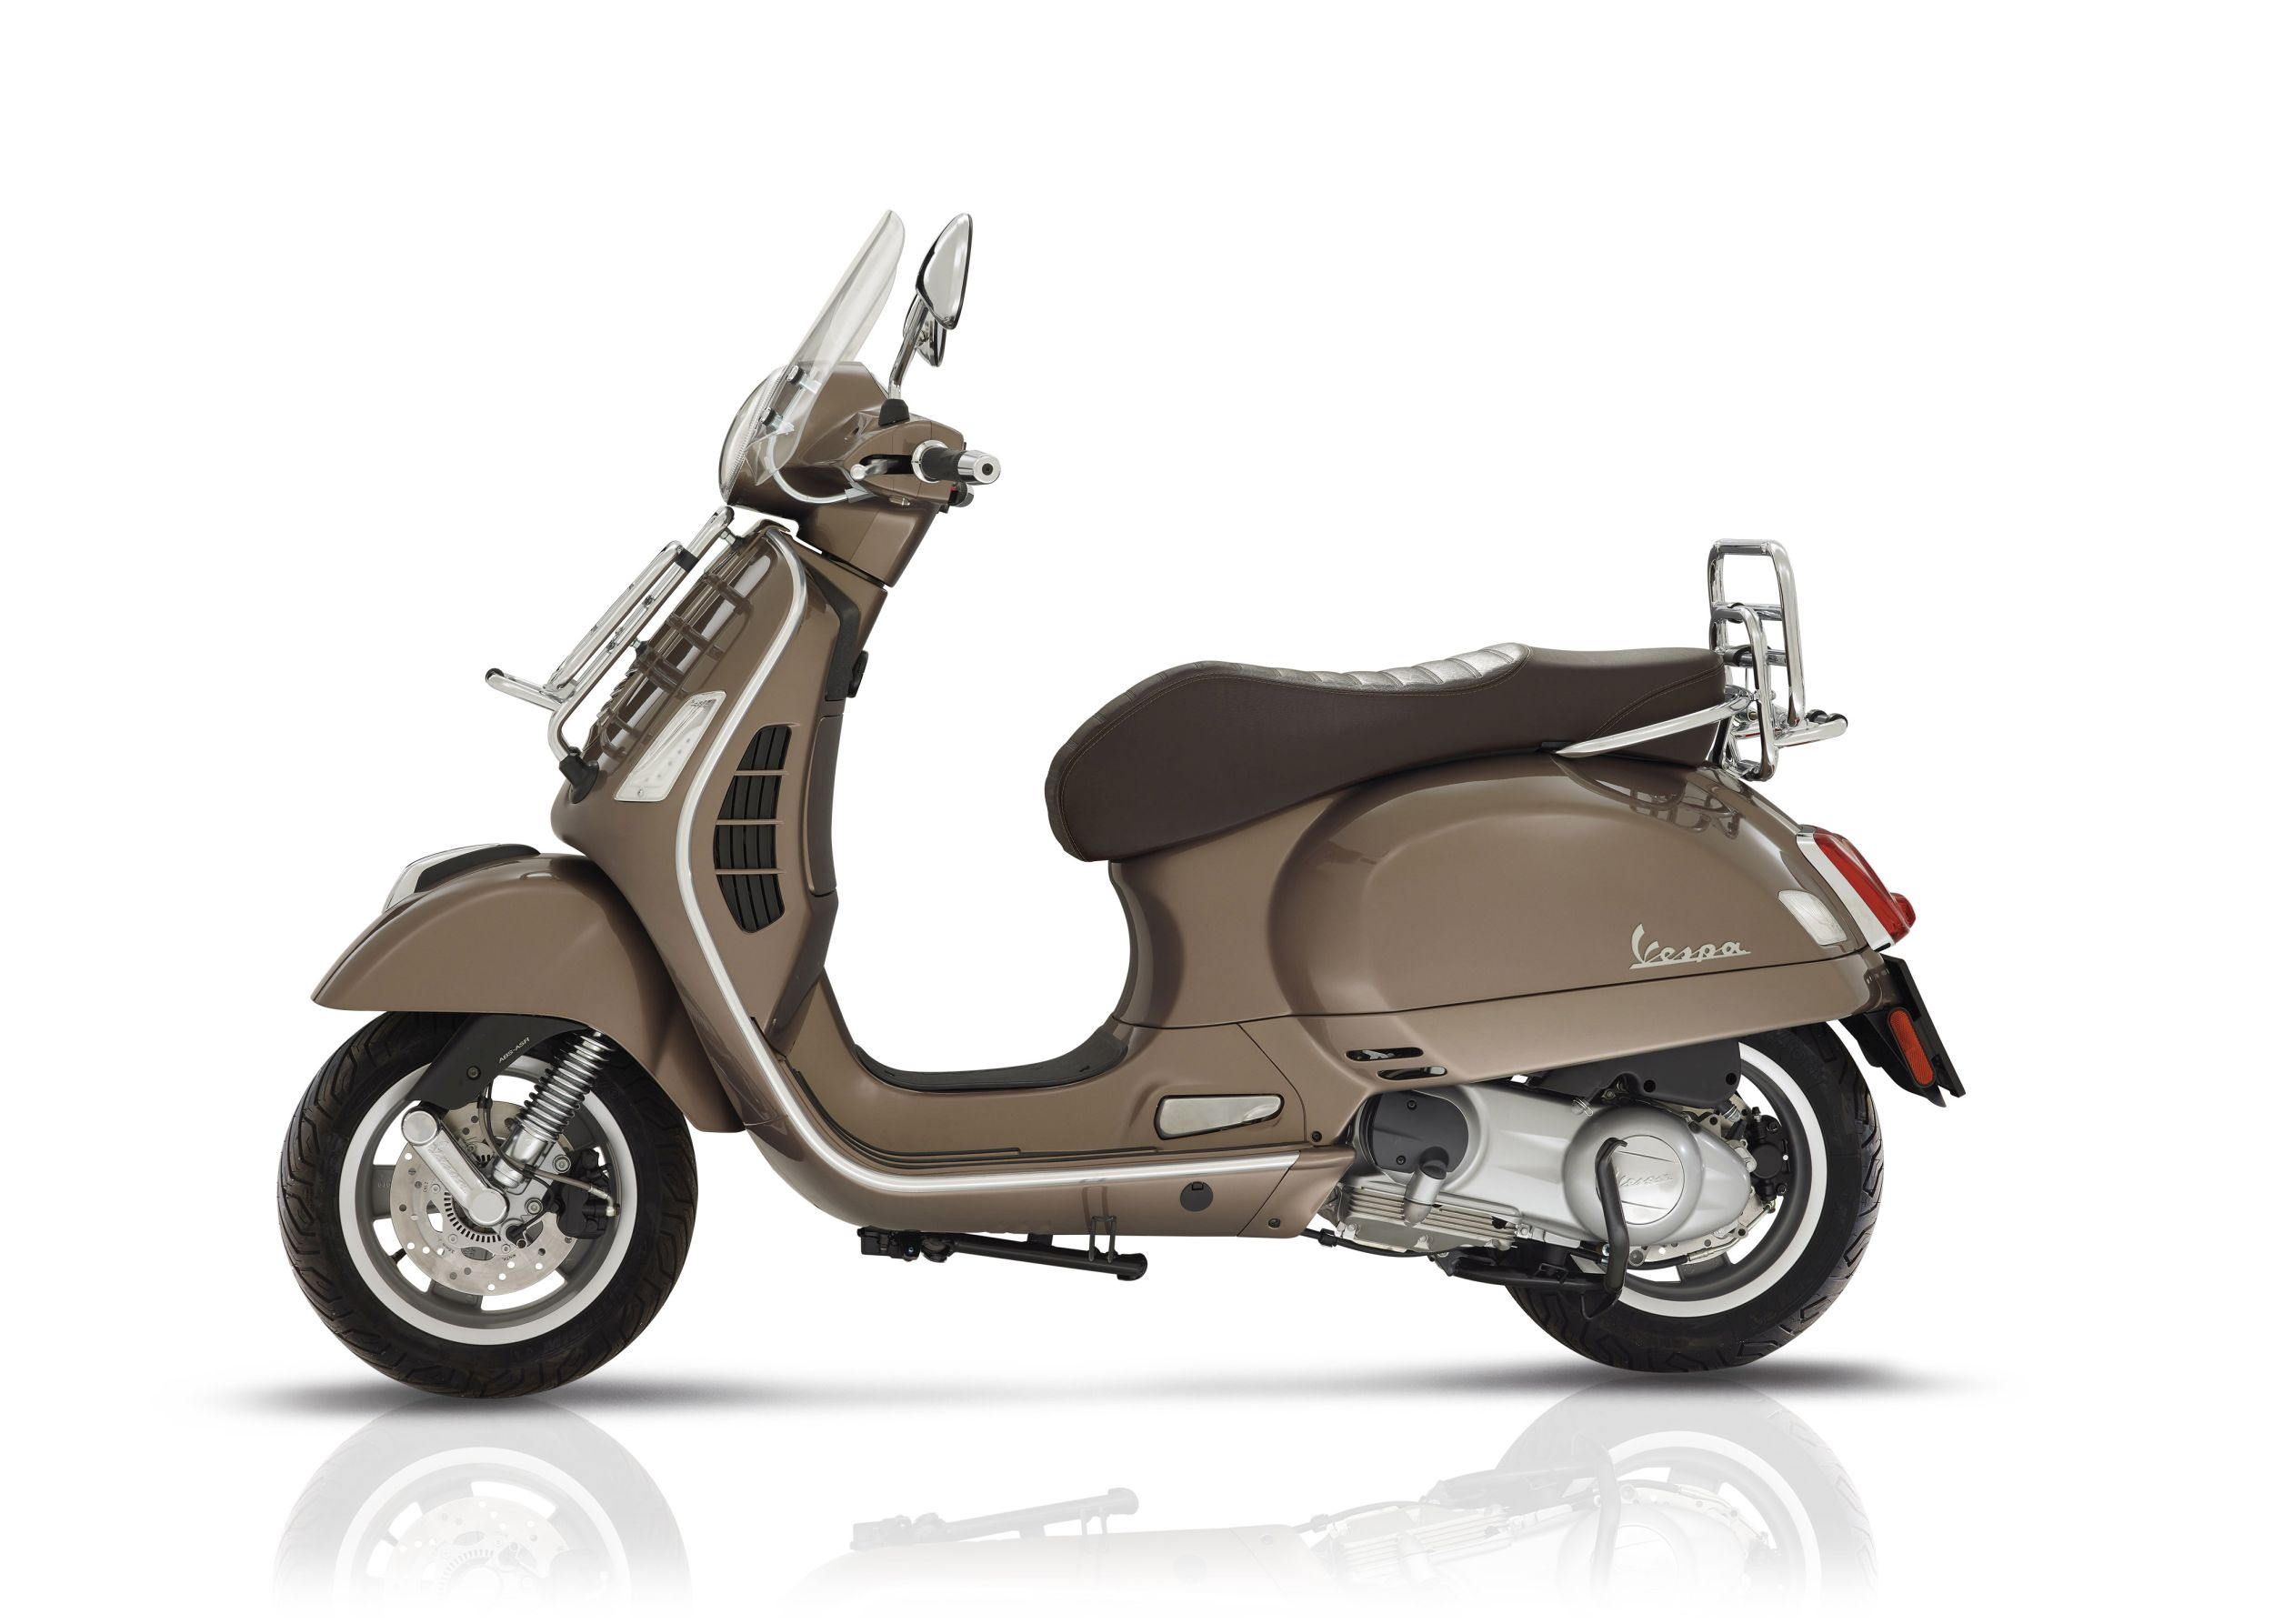 vespa gts 125 i e touring all technical data of the model gts 125 i e touring from vespa. Black Bedroom Furniture Sets. Home Design Ideas